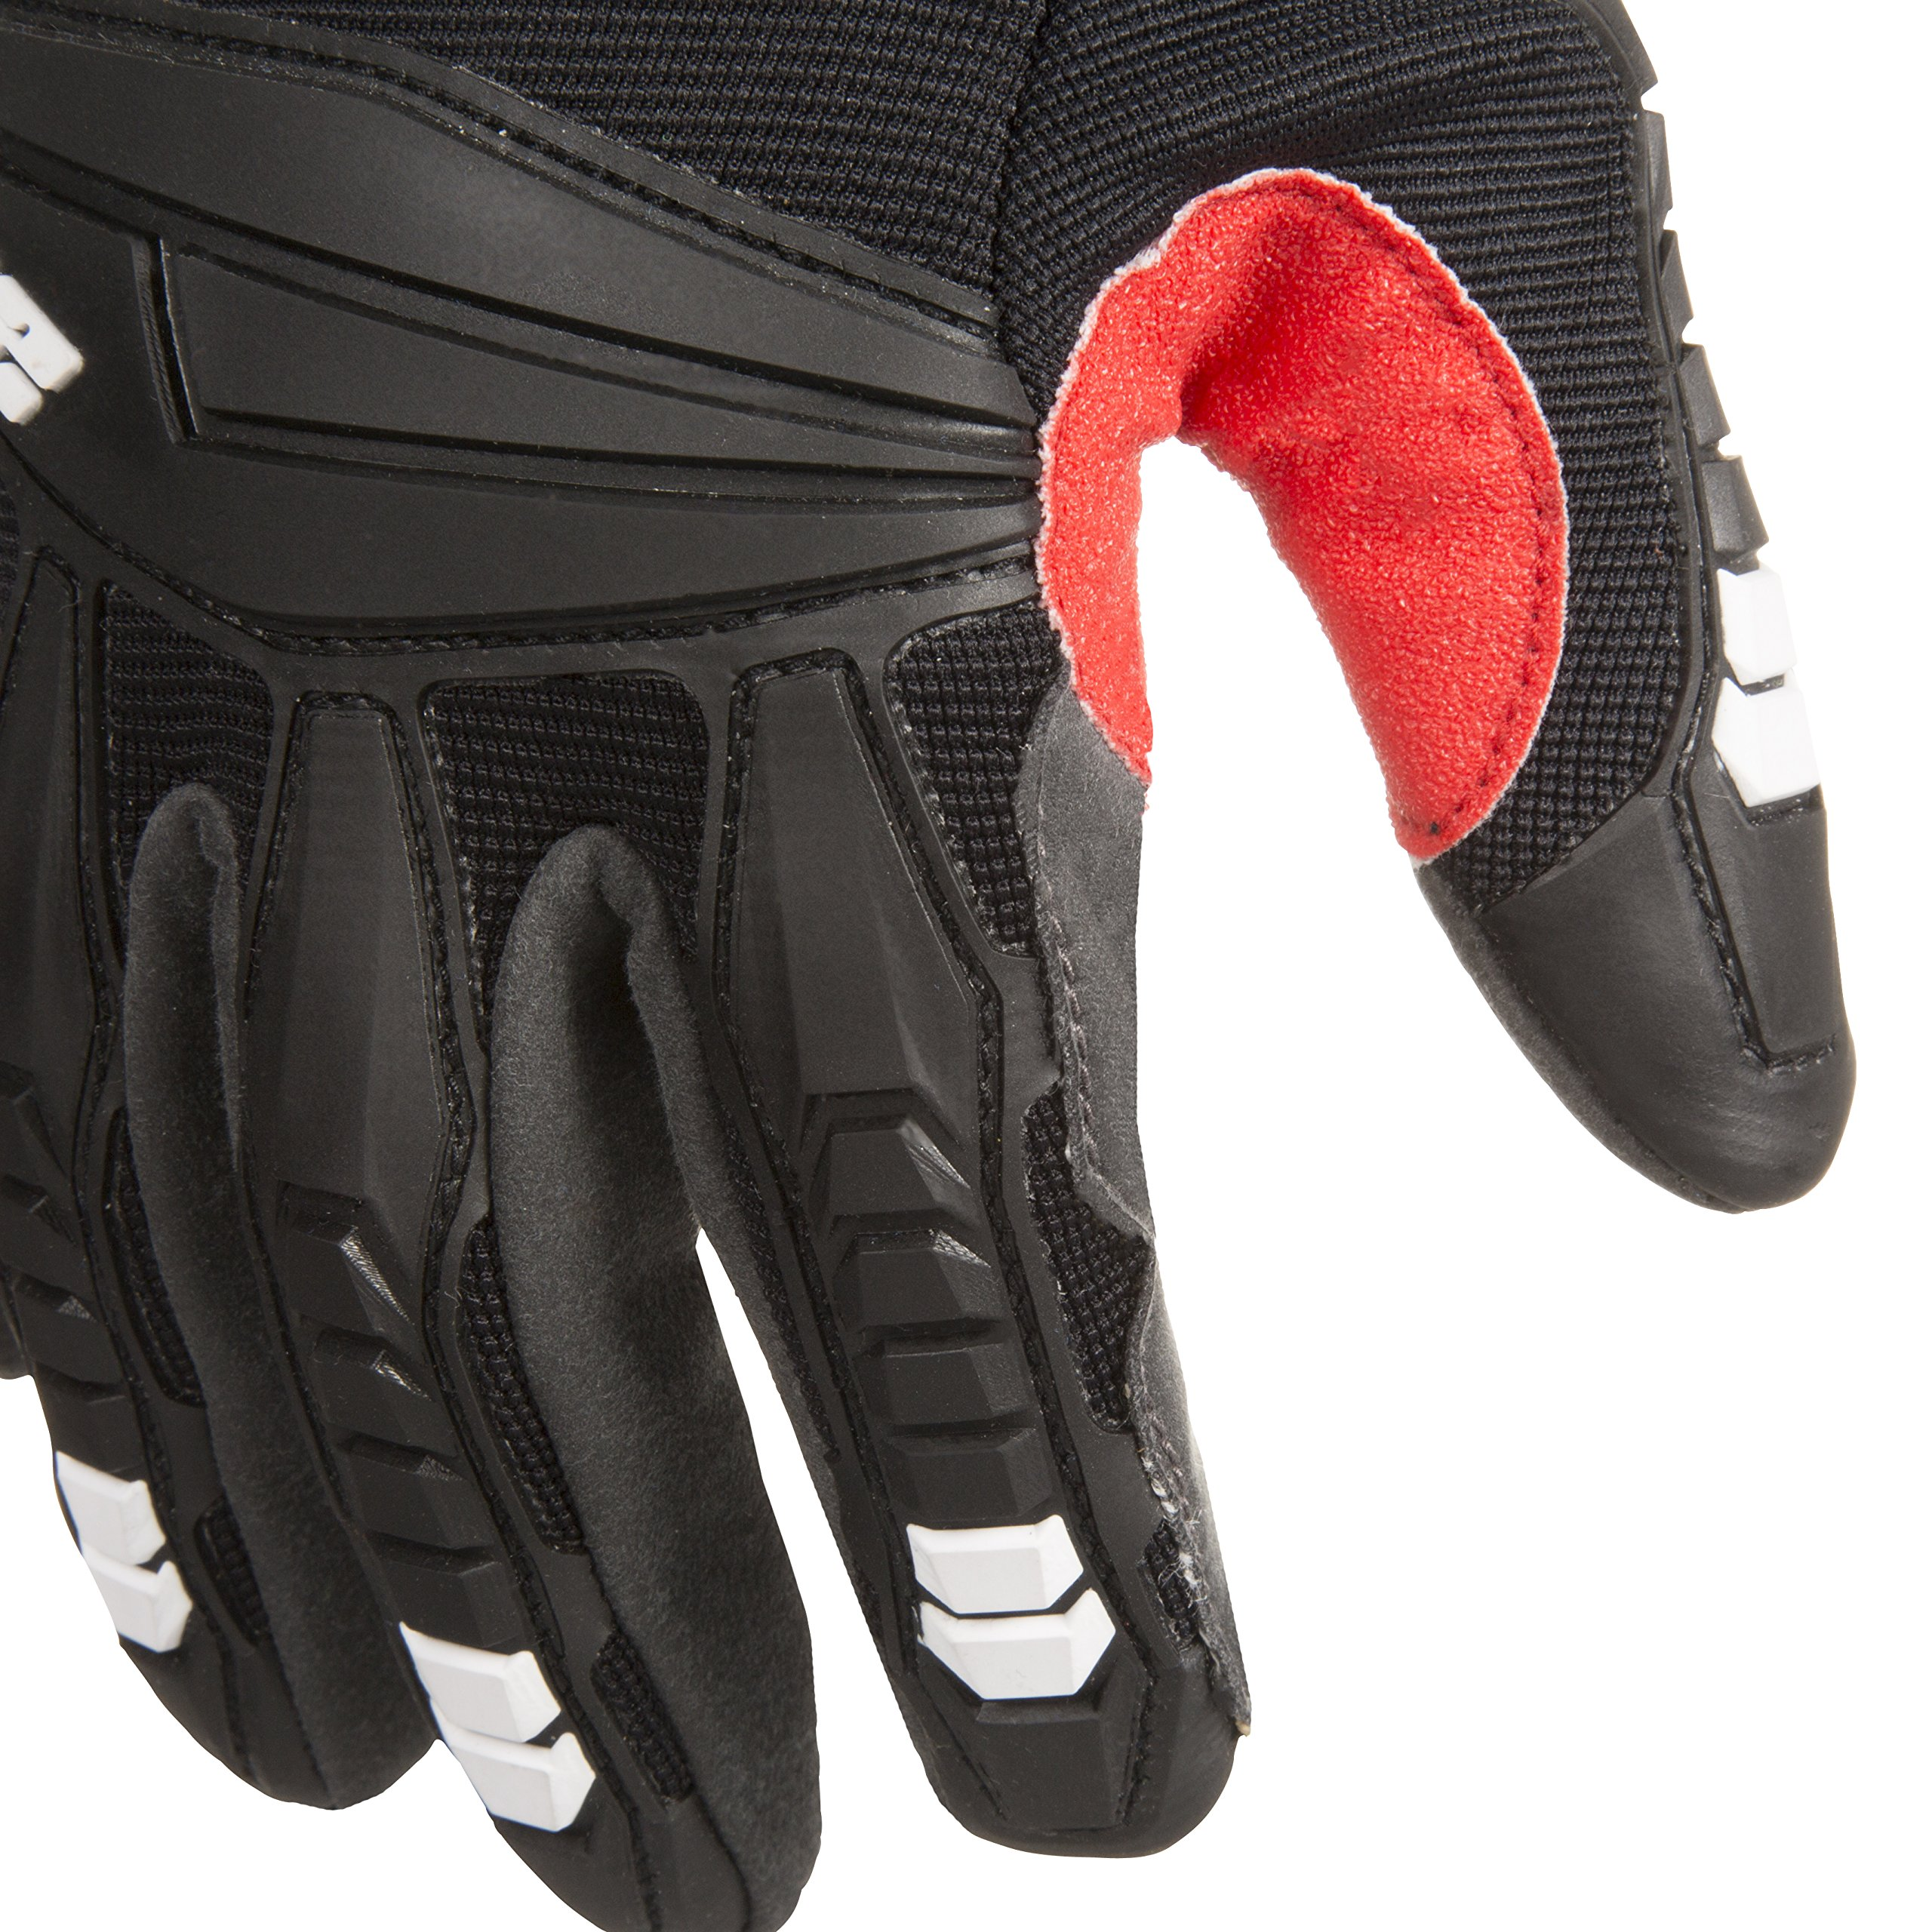 212 Performance Gloves IMPC2W-03-010 Impact Cut Resistant Winter Work Glove (EN Level 2, ANSI A2), Large by 212 Performance Gloves (Image #4)